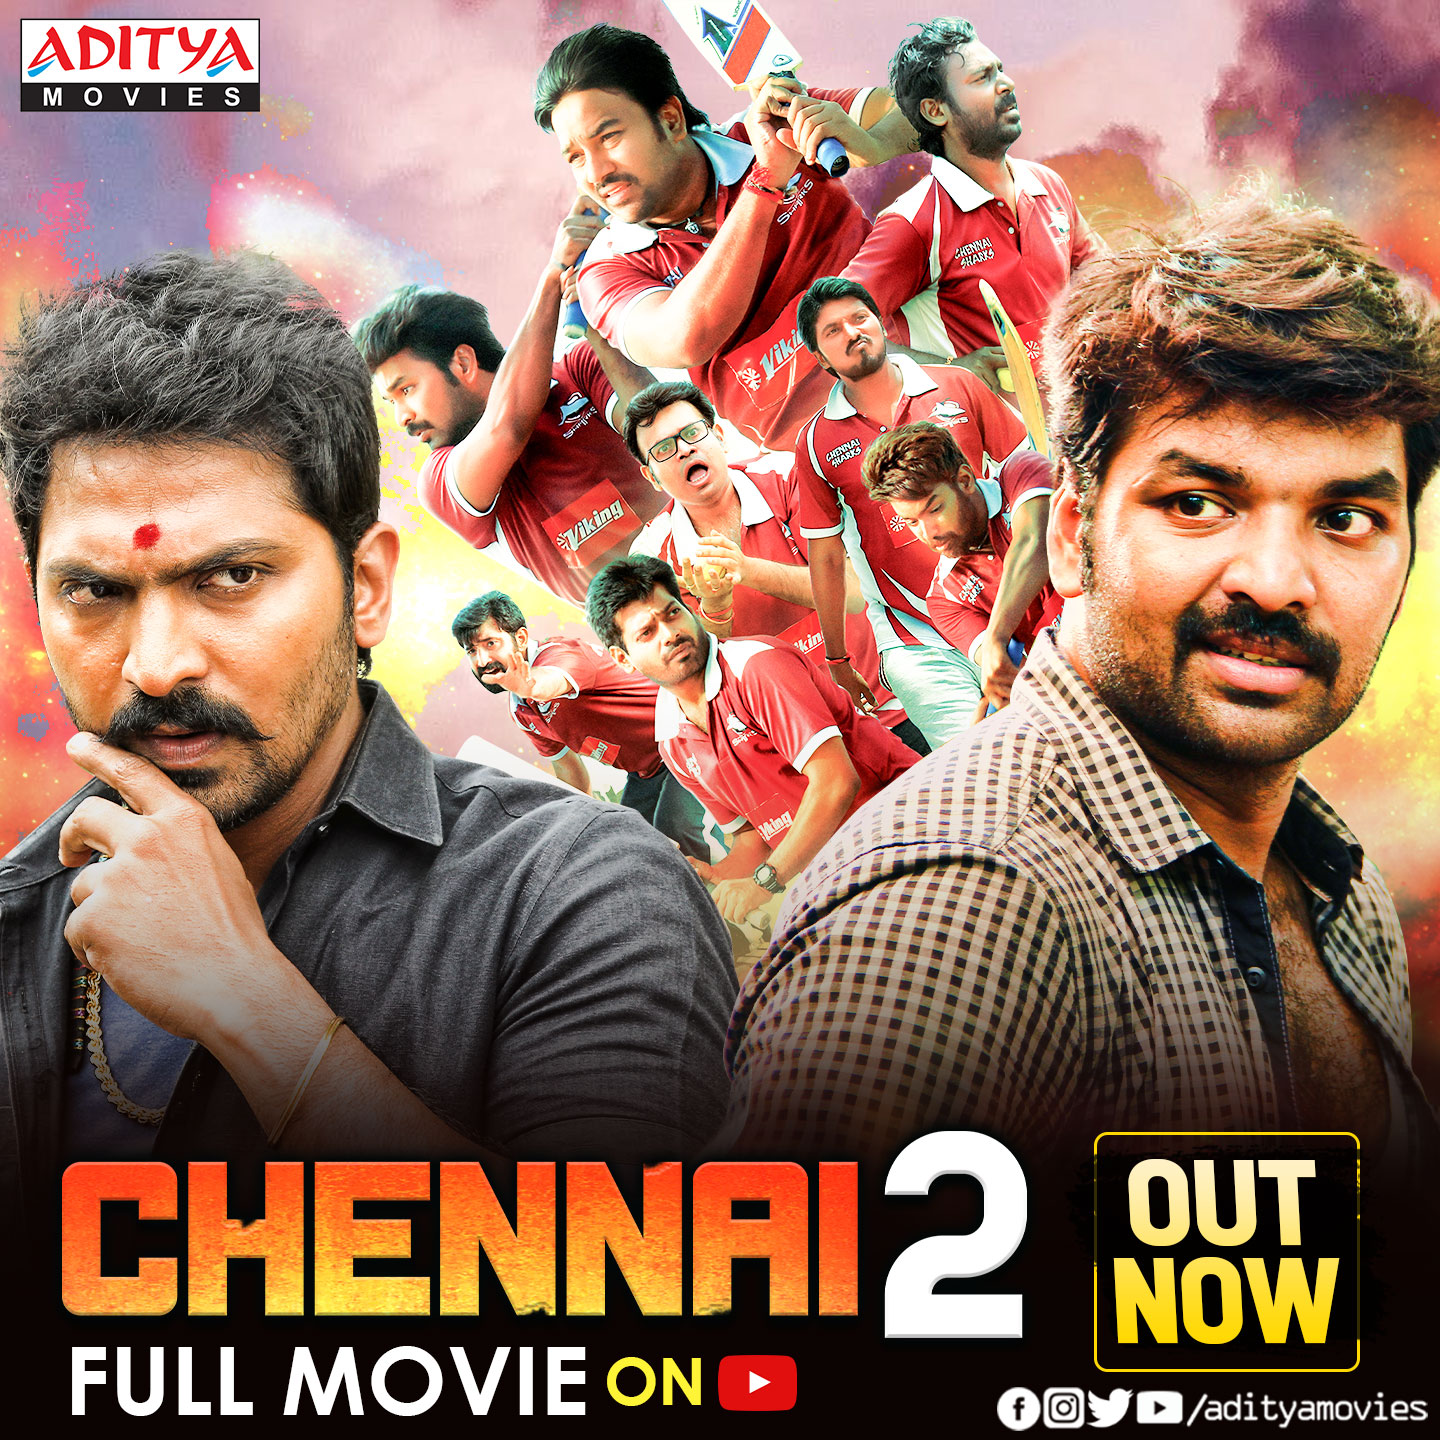 Chennai 2 (Chennai 600028 II) 2021 Hindi Dubbed 720p HDRip 910MB Download